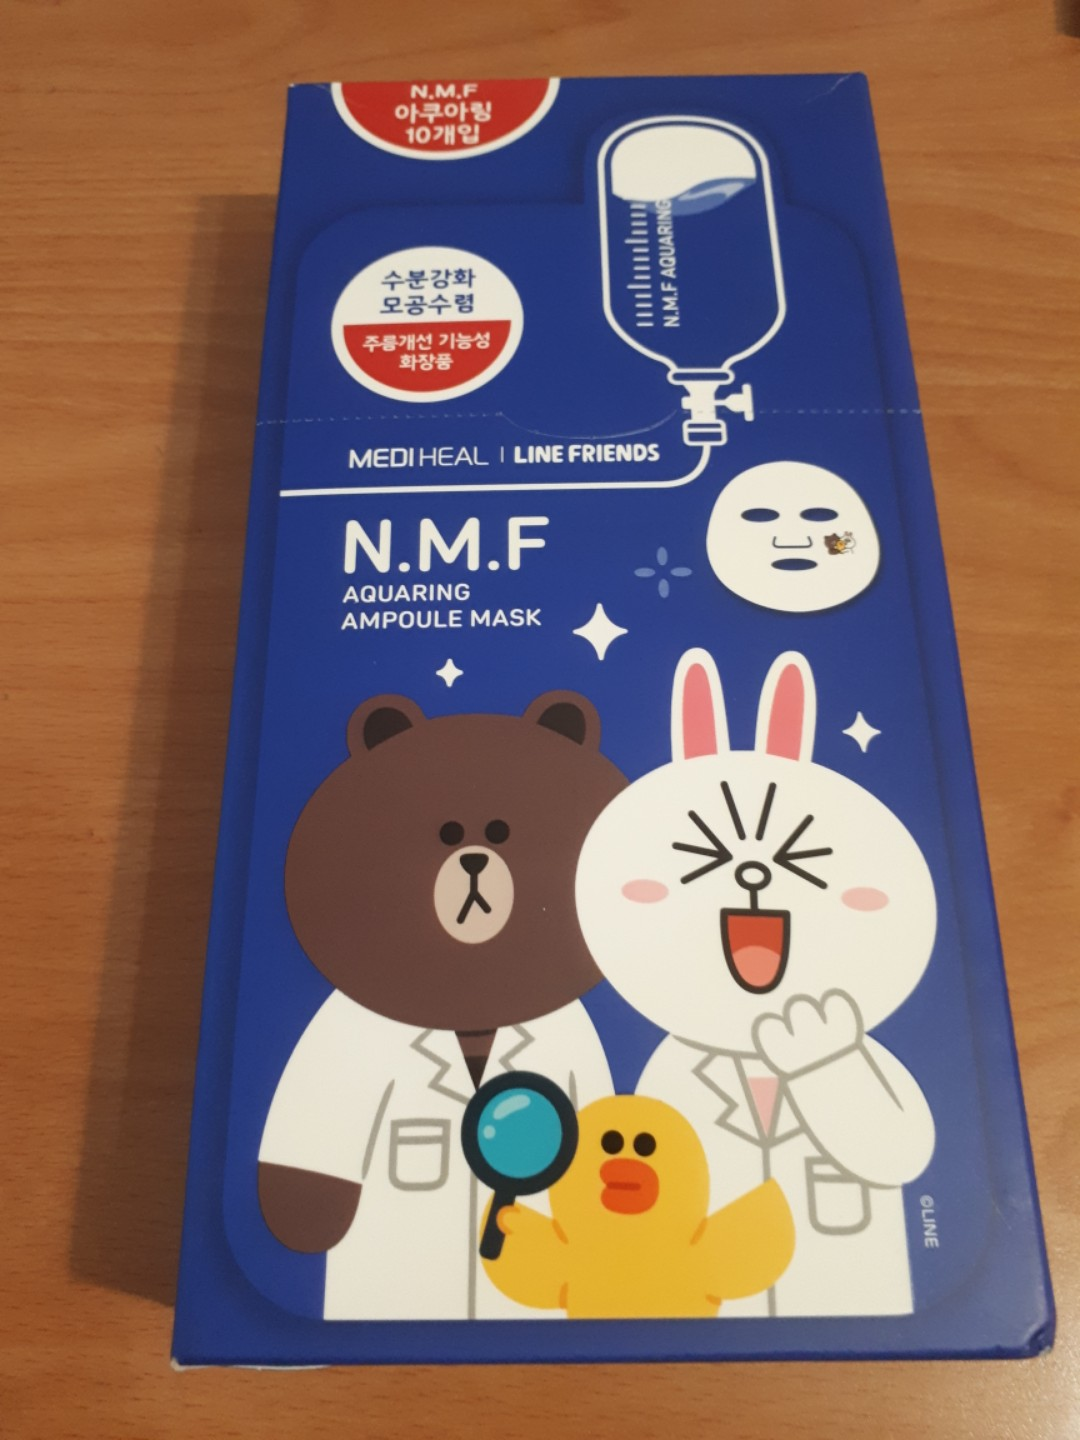 BN NMF aquaring ampoule masks (line friends), Health & Beauty, Face & Skin Care on Carousell